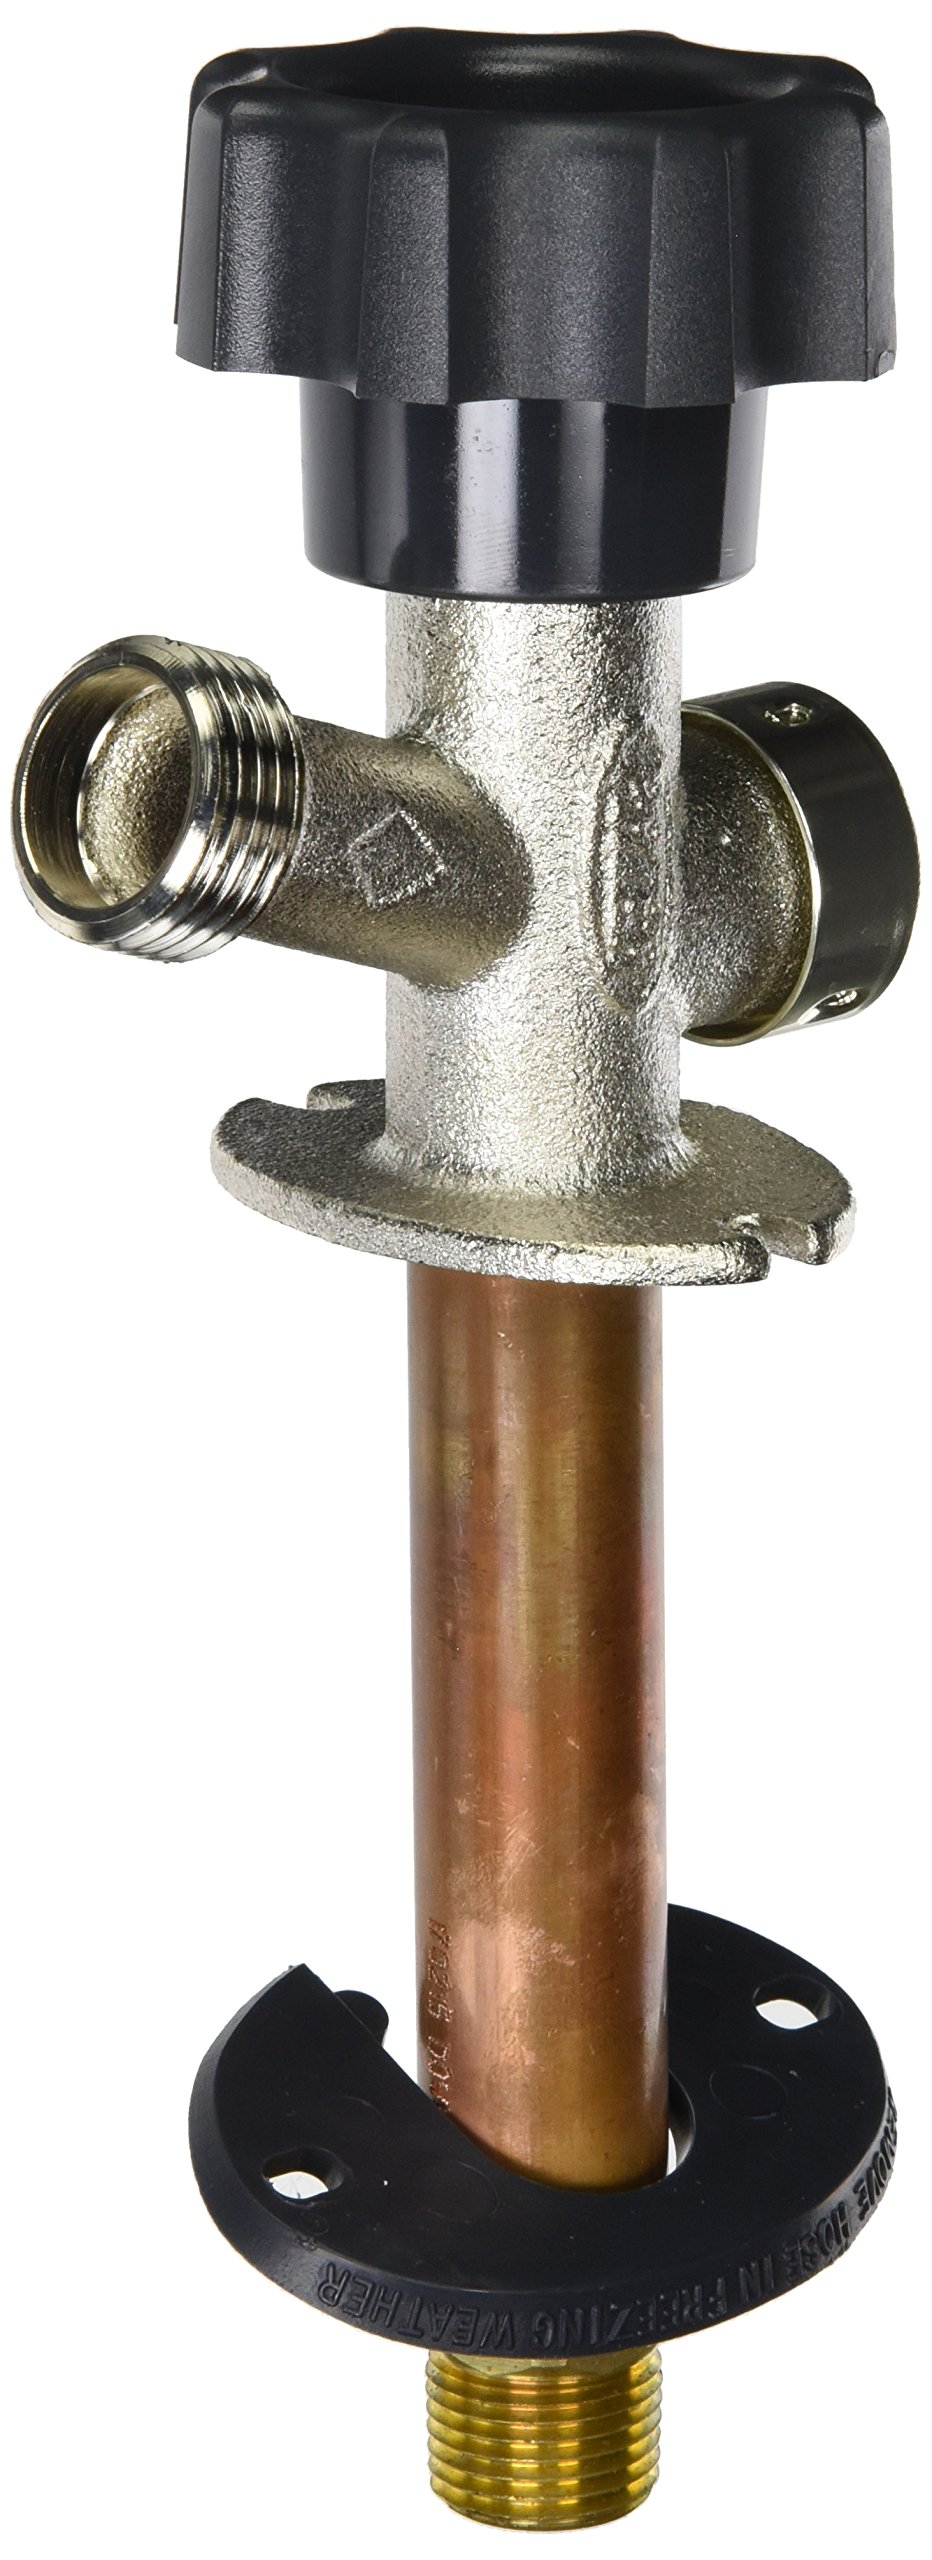 Prier 478-04 Mansfield Style Residential Anti-Siphon Wall Hydrant, 4-Inch